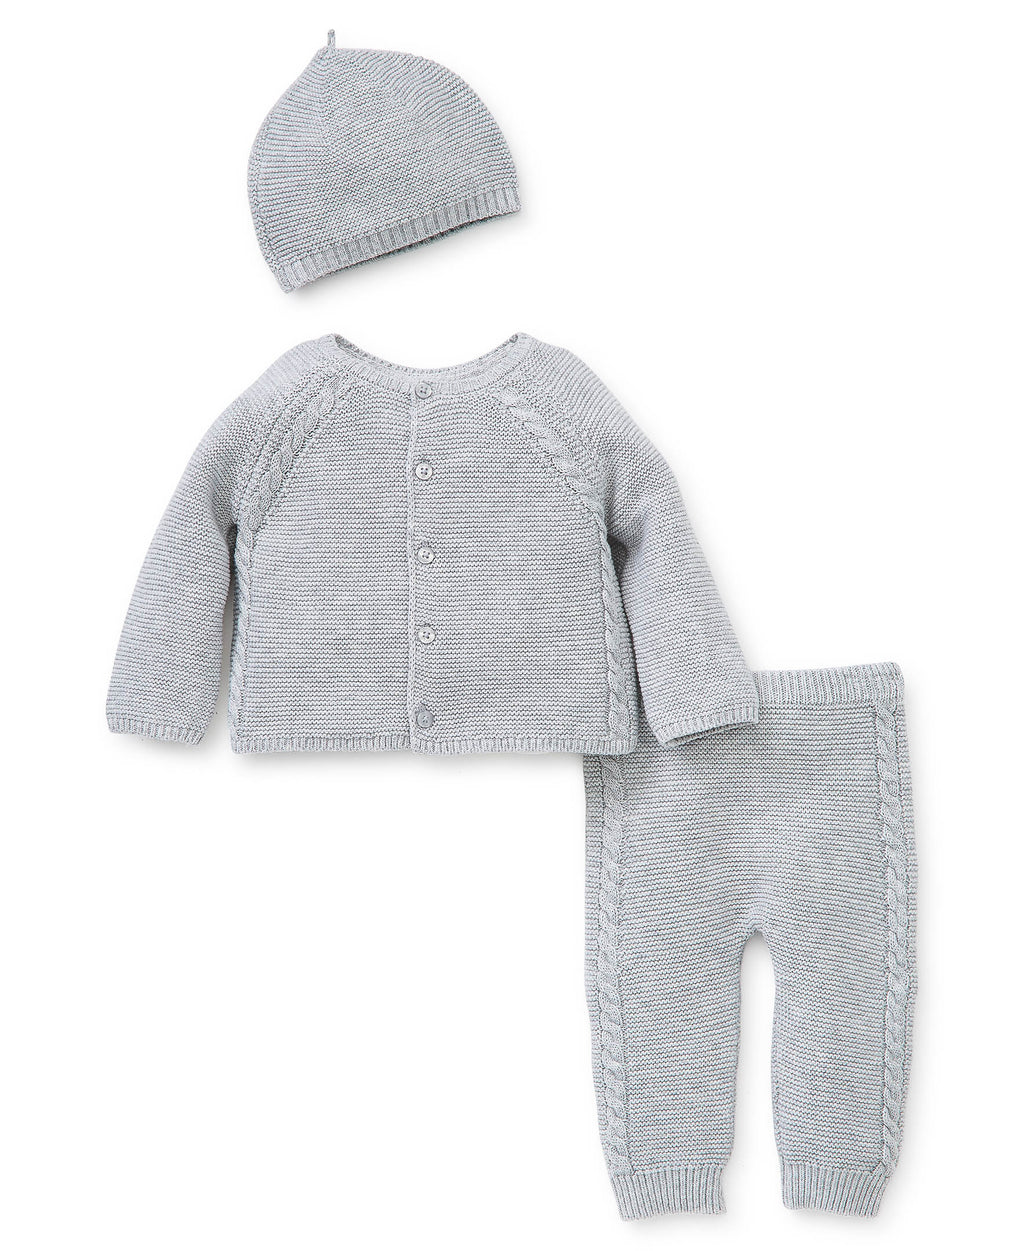 Grey Sweater Set